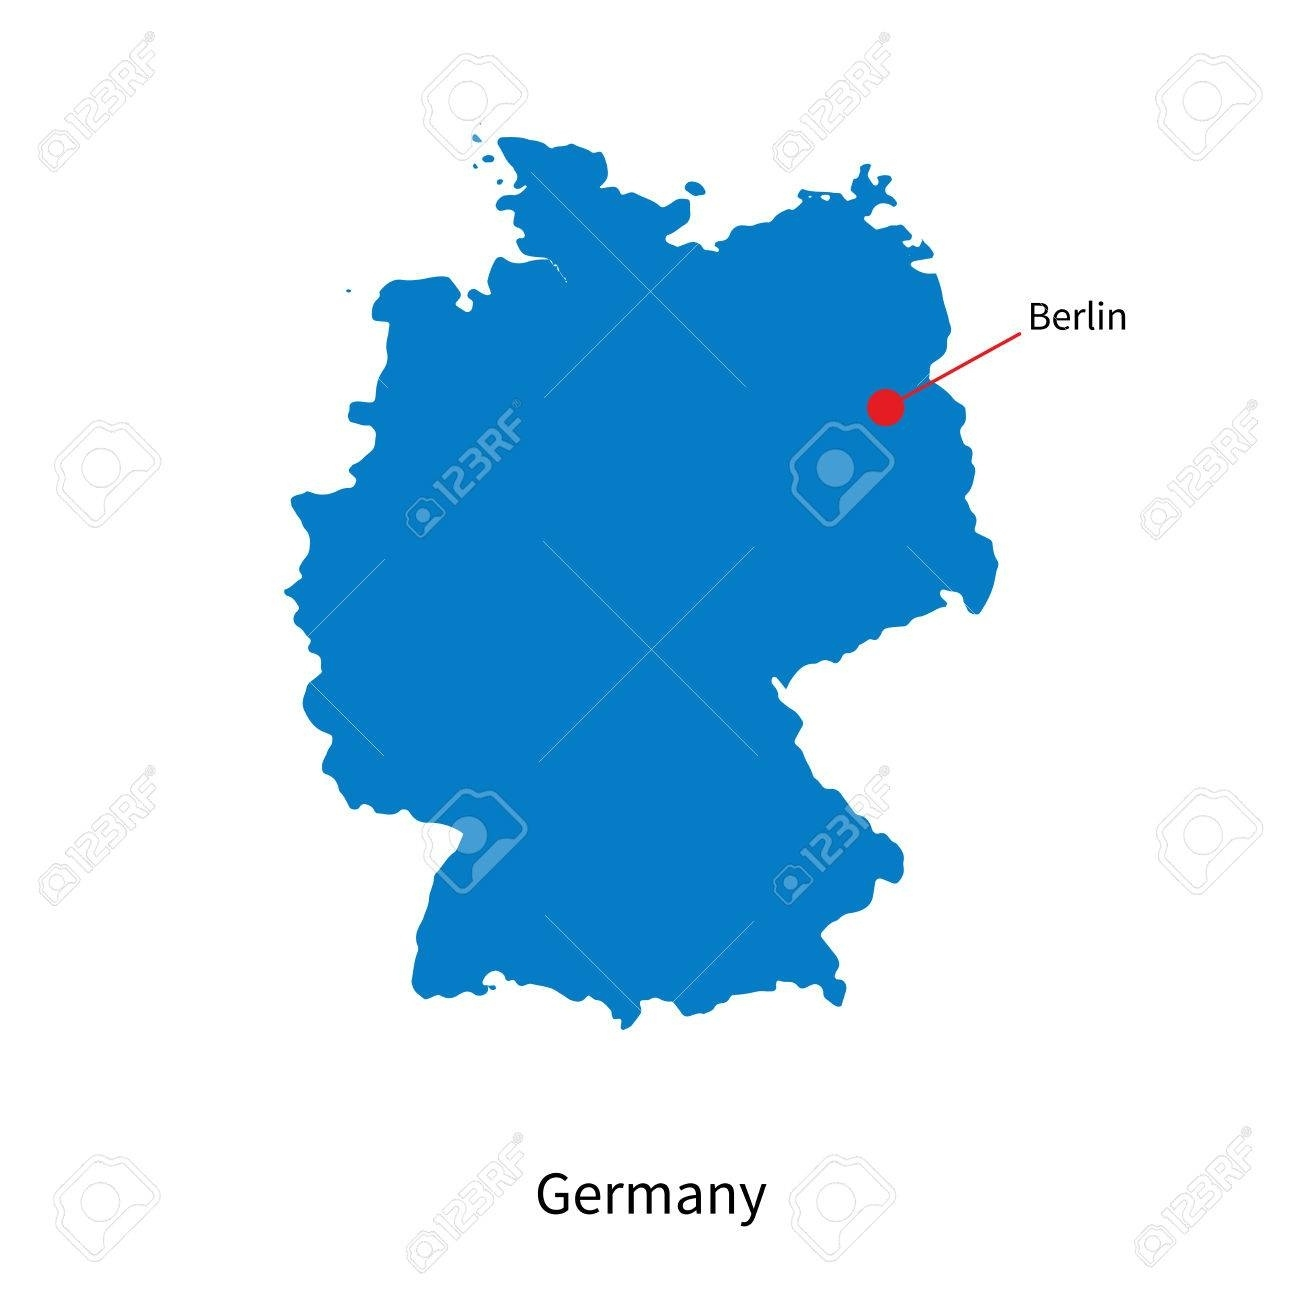 Detailed Map Of Germany And Capital City Berlin regarding Capital Of Germany Map